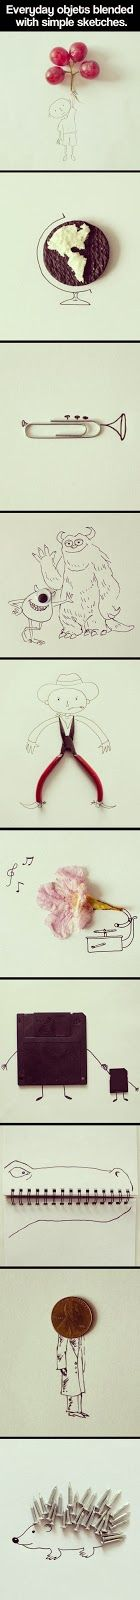 Popular Pinterest: Everyday objects blended with simple sketches